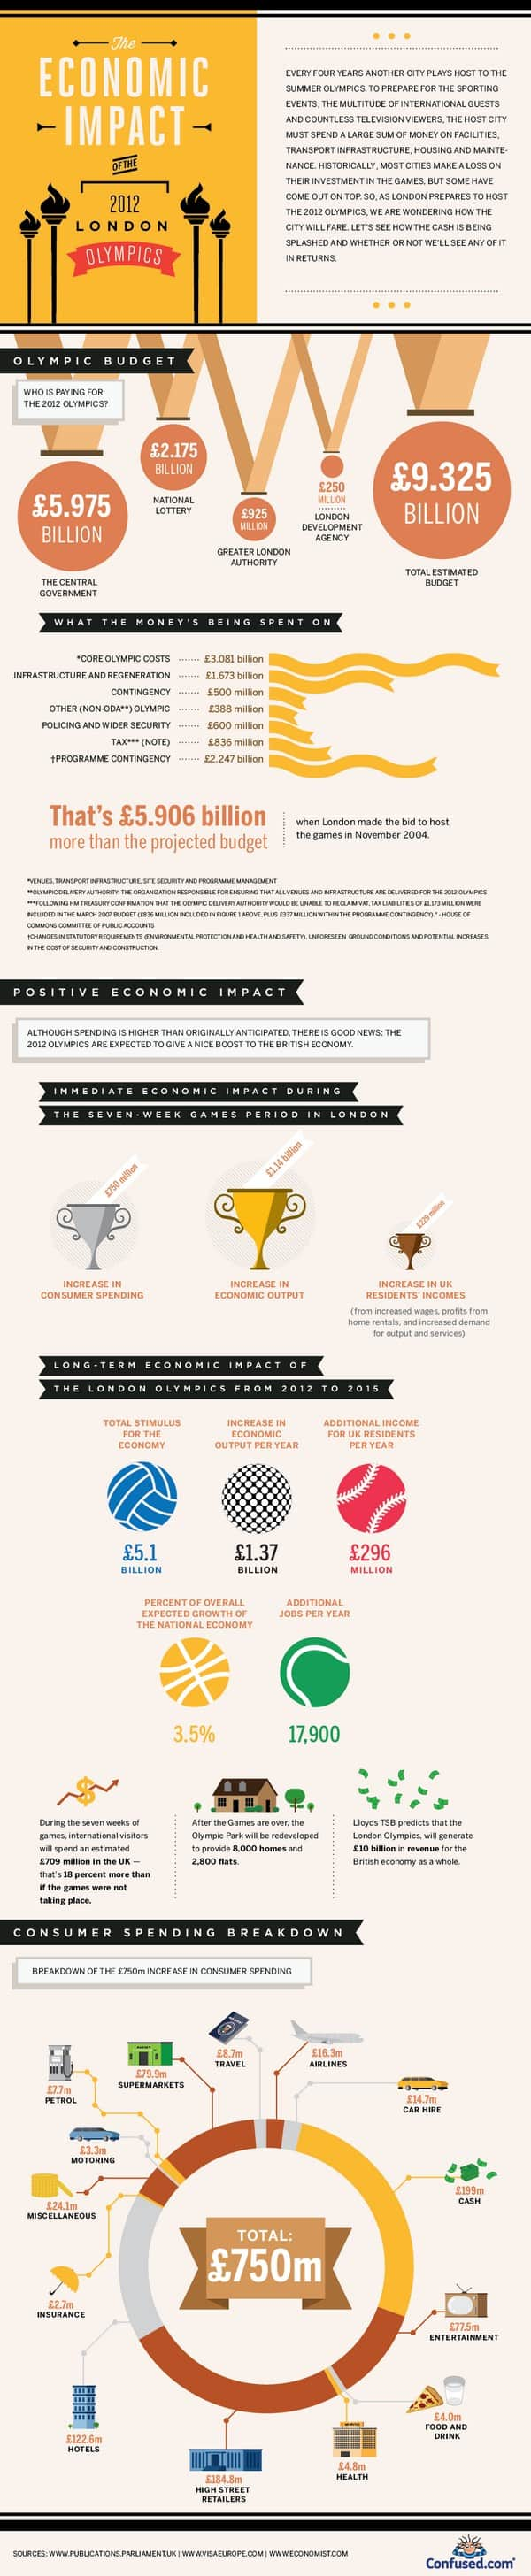 London Olympics Costs Infographic